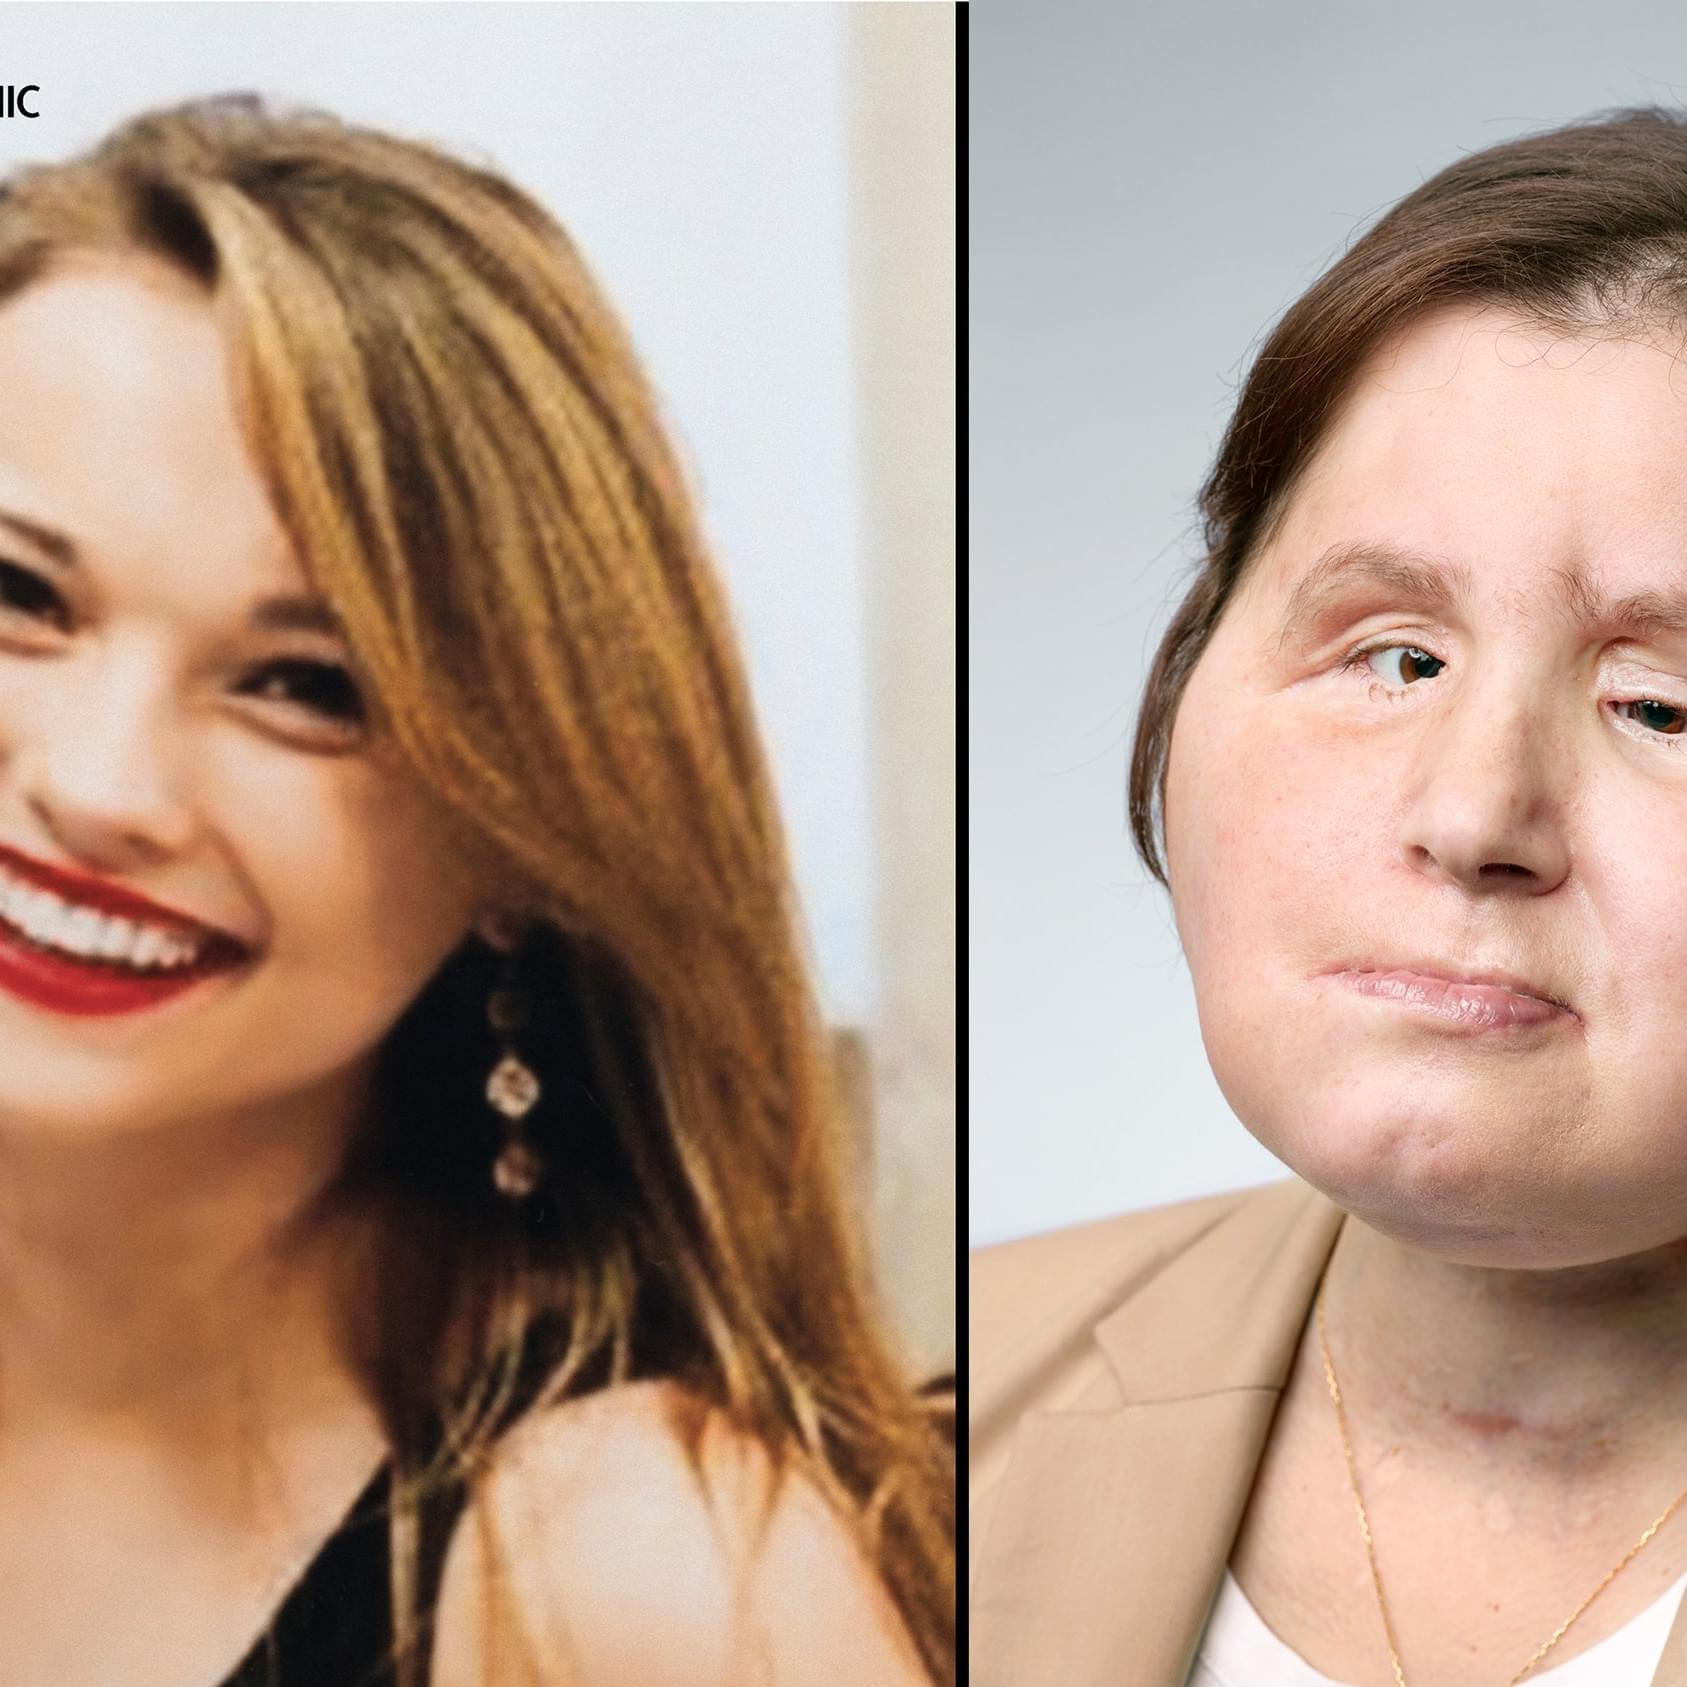 The Worlds Youngest Face Transplant Recipient Hopes To Start A New Life